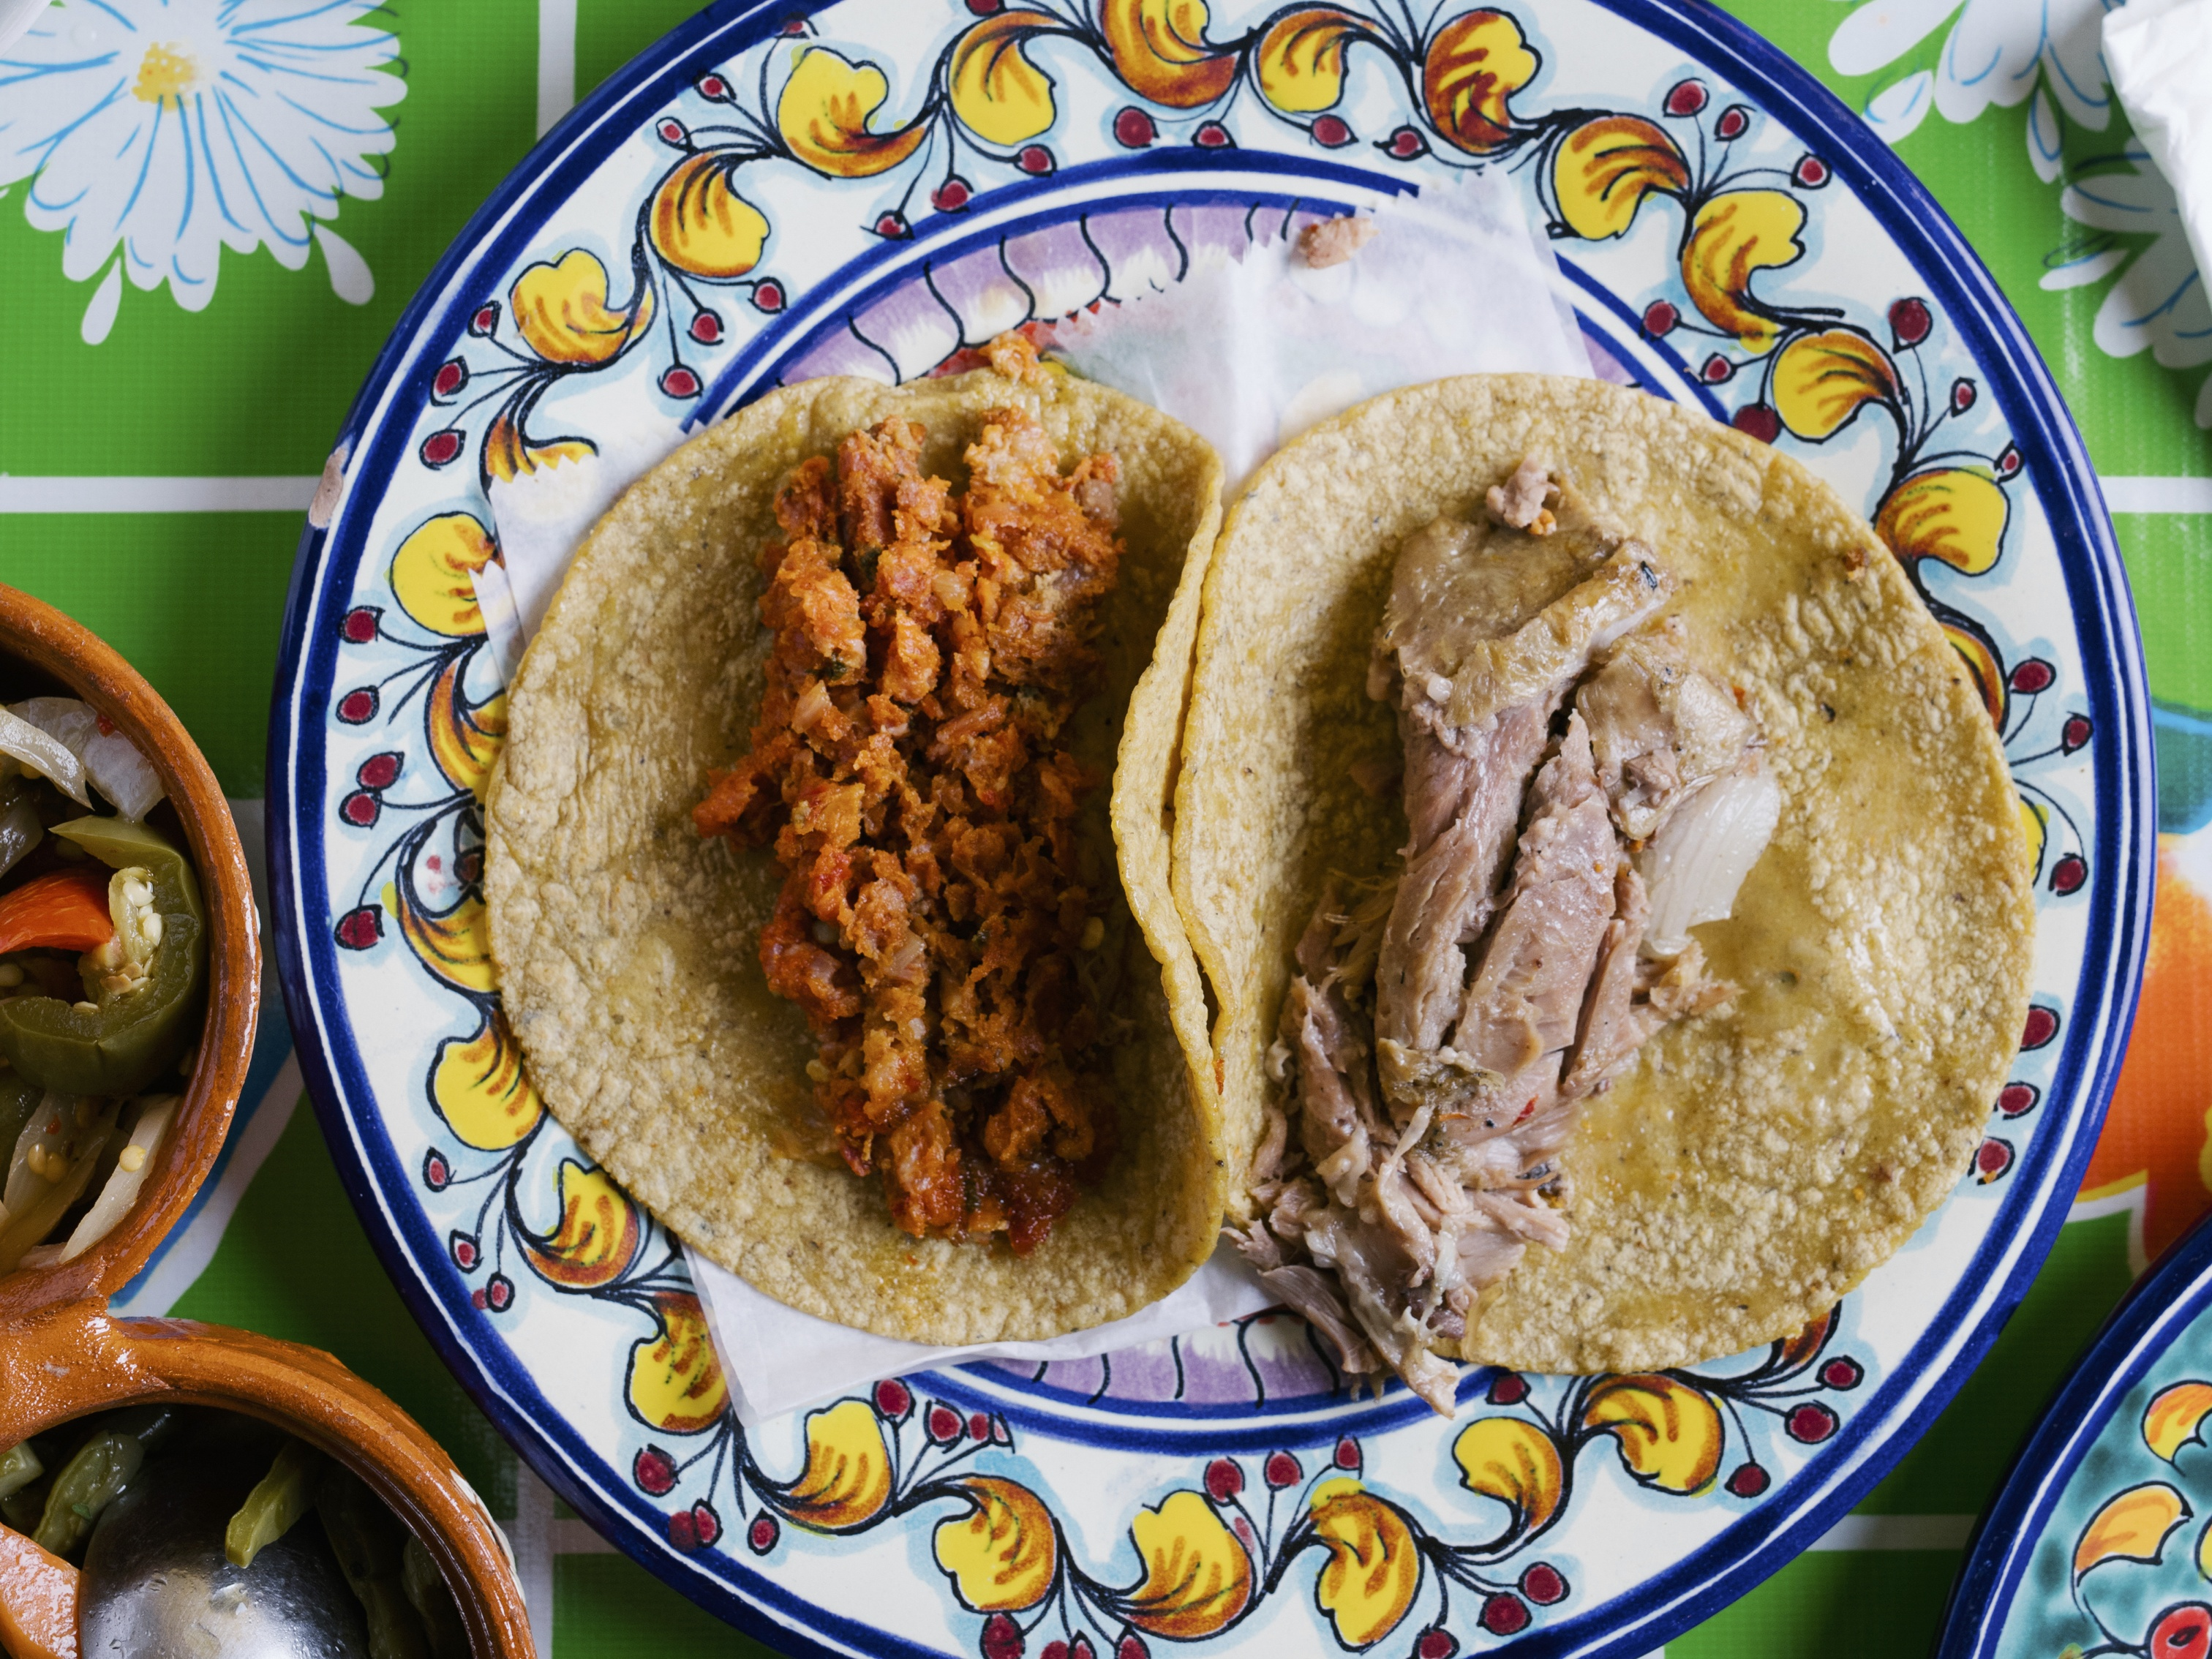 Two tacos on a plate.